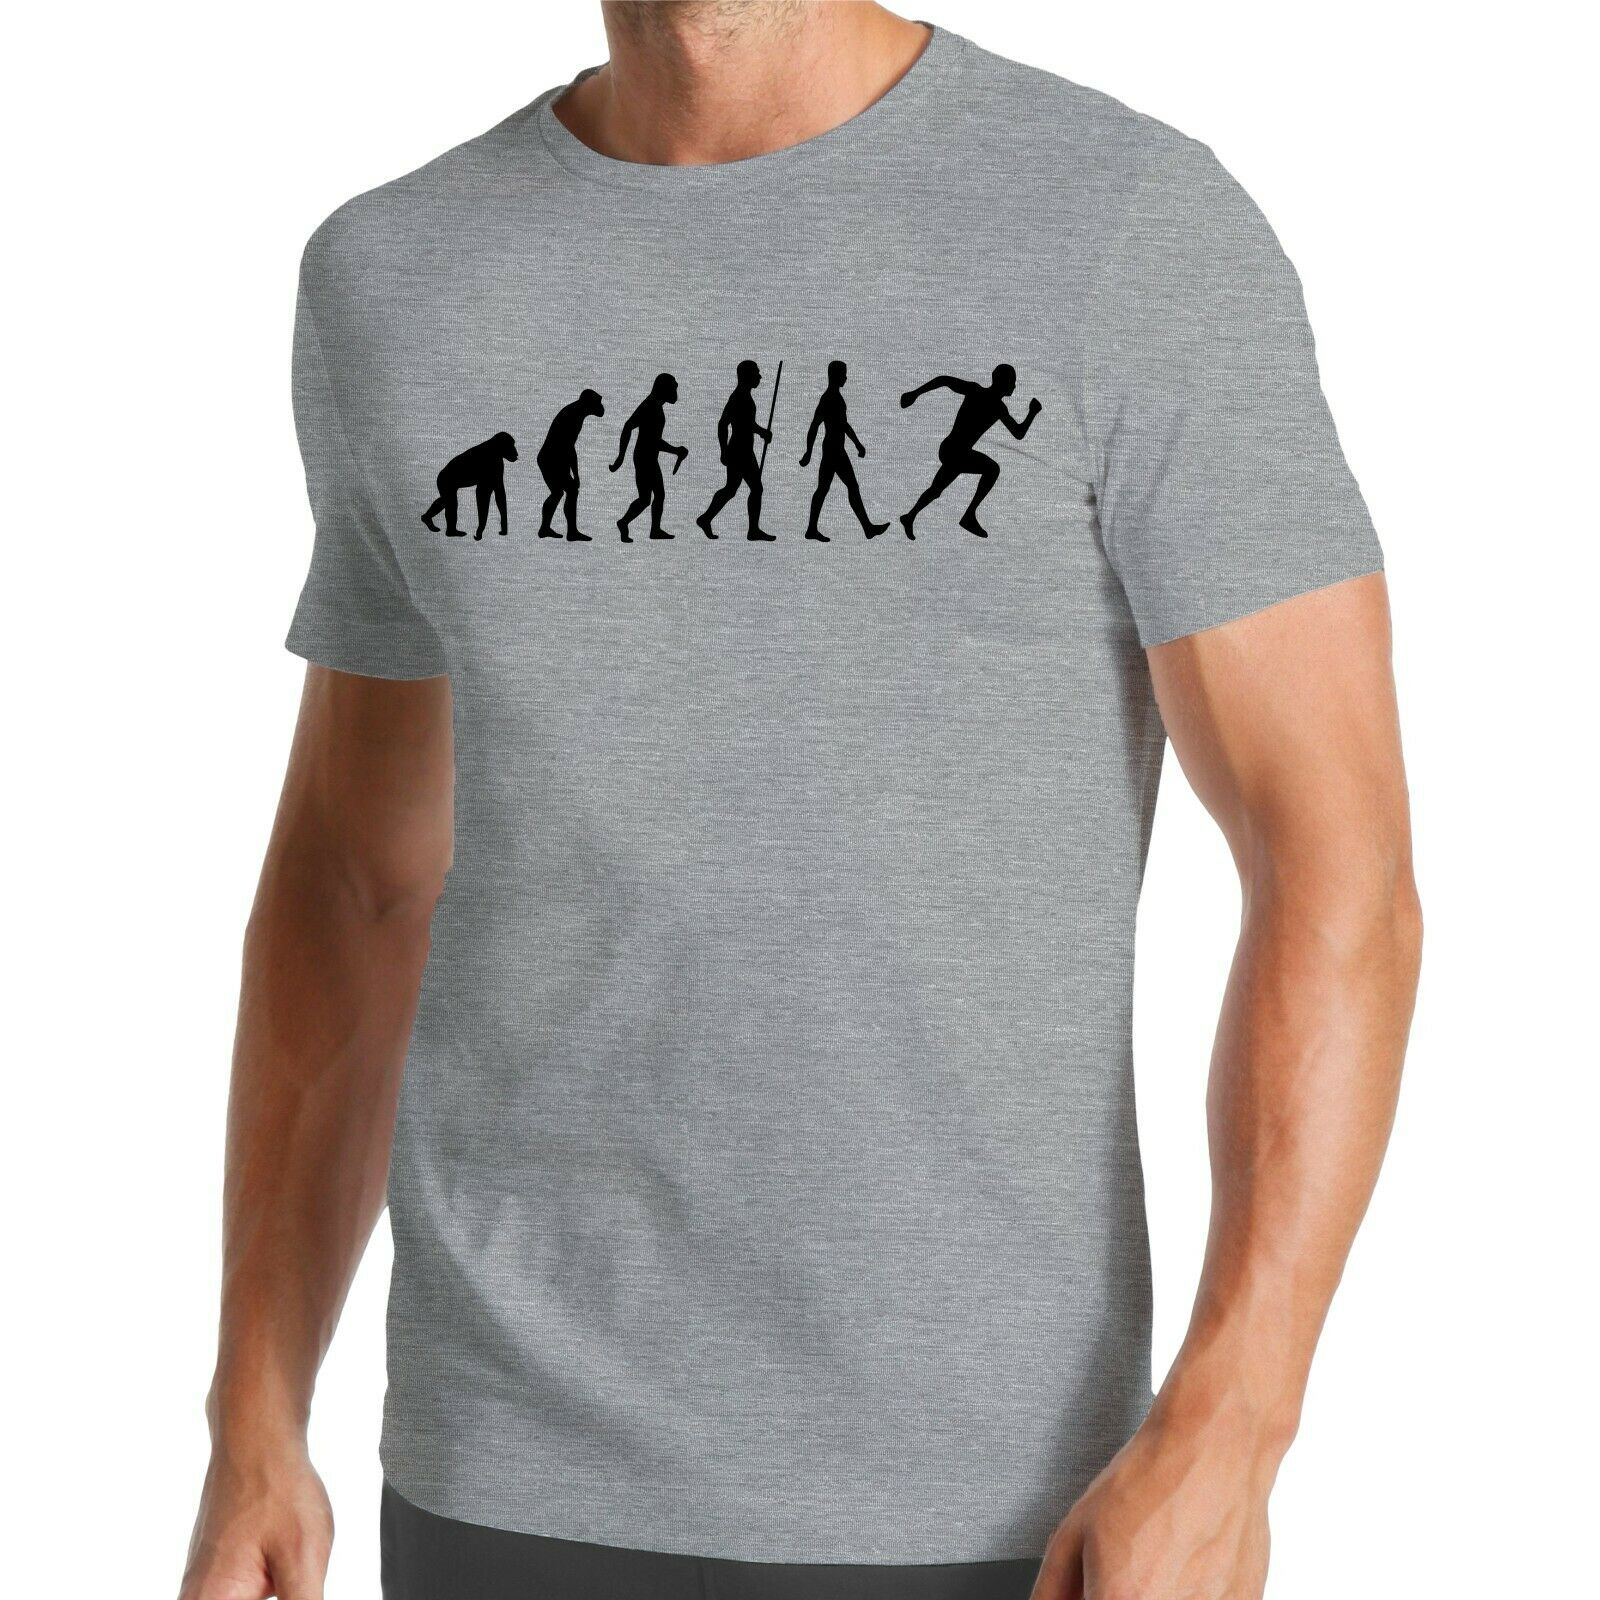 Evolution Rennen T-Shirt | Running | Marathon | Sprint | Leichtathletik